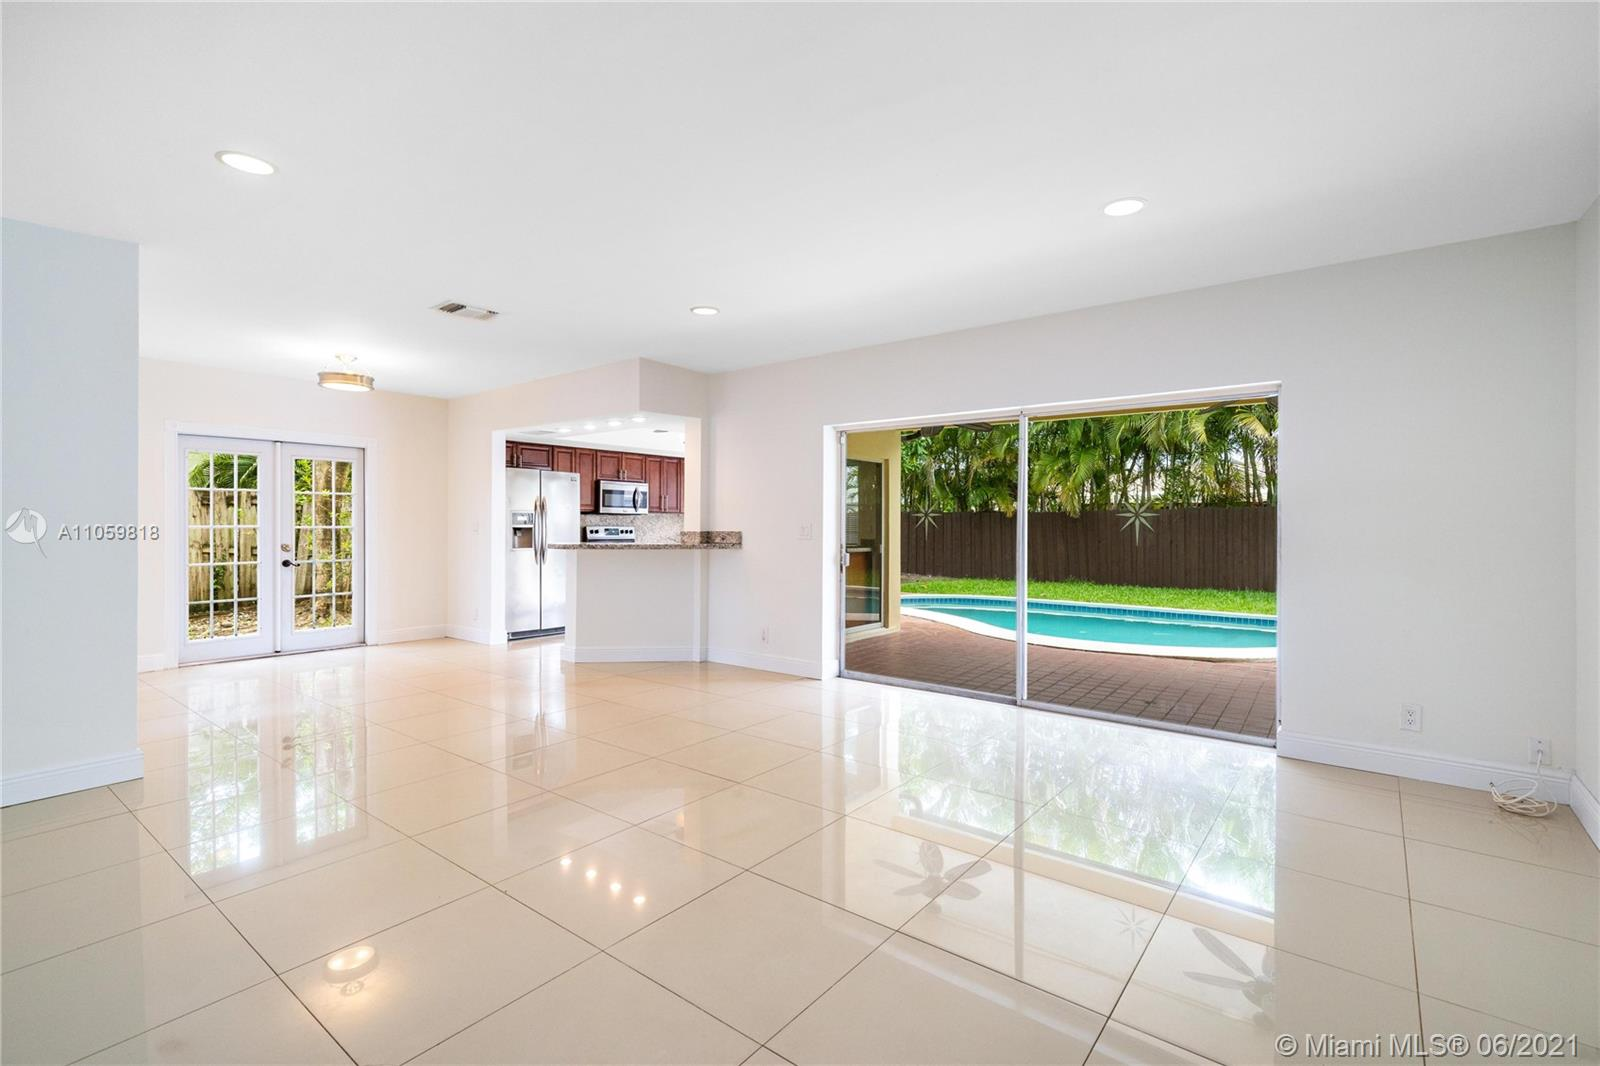 Imperial Point - 5800 NE 18th Ave, Fort Lauderdale, FL 33334